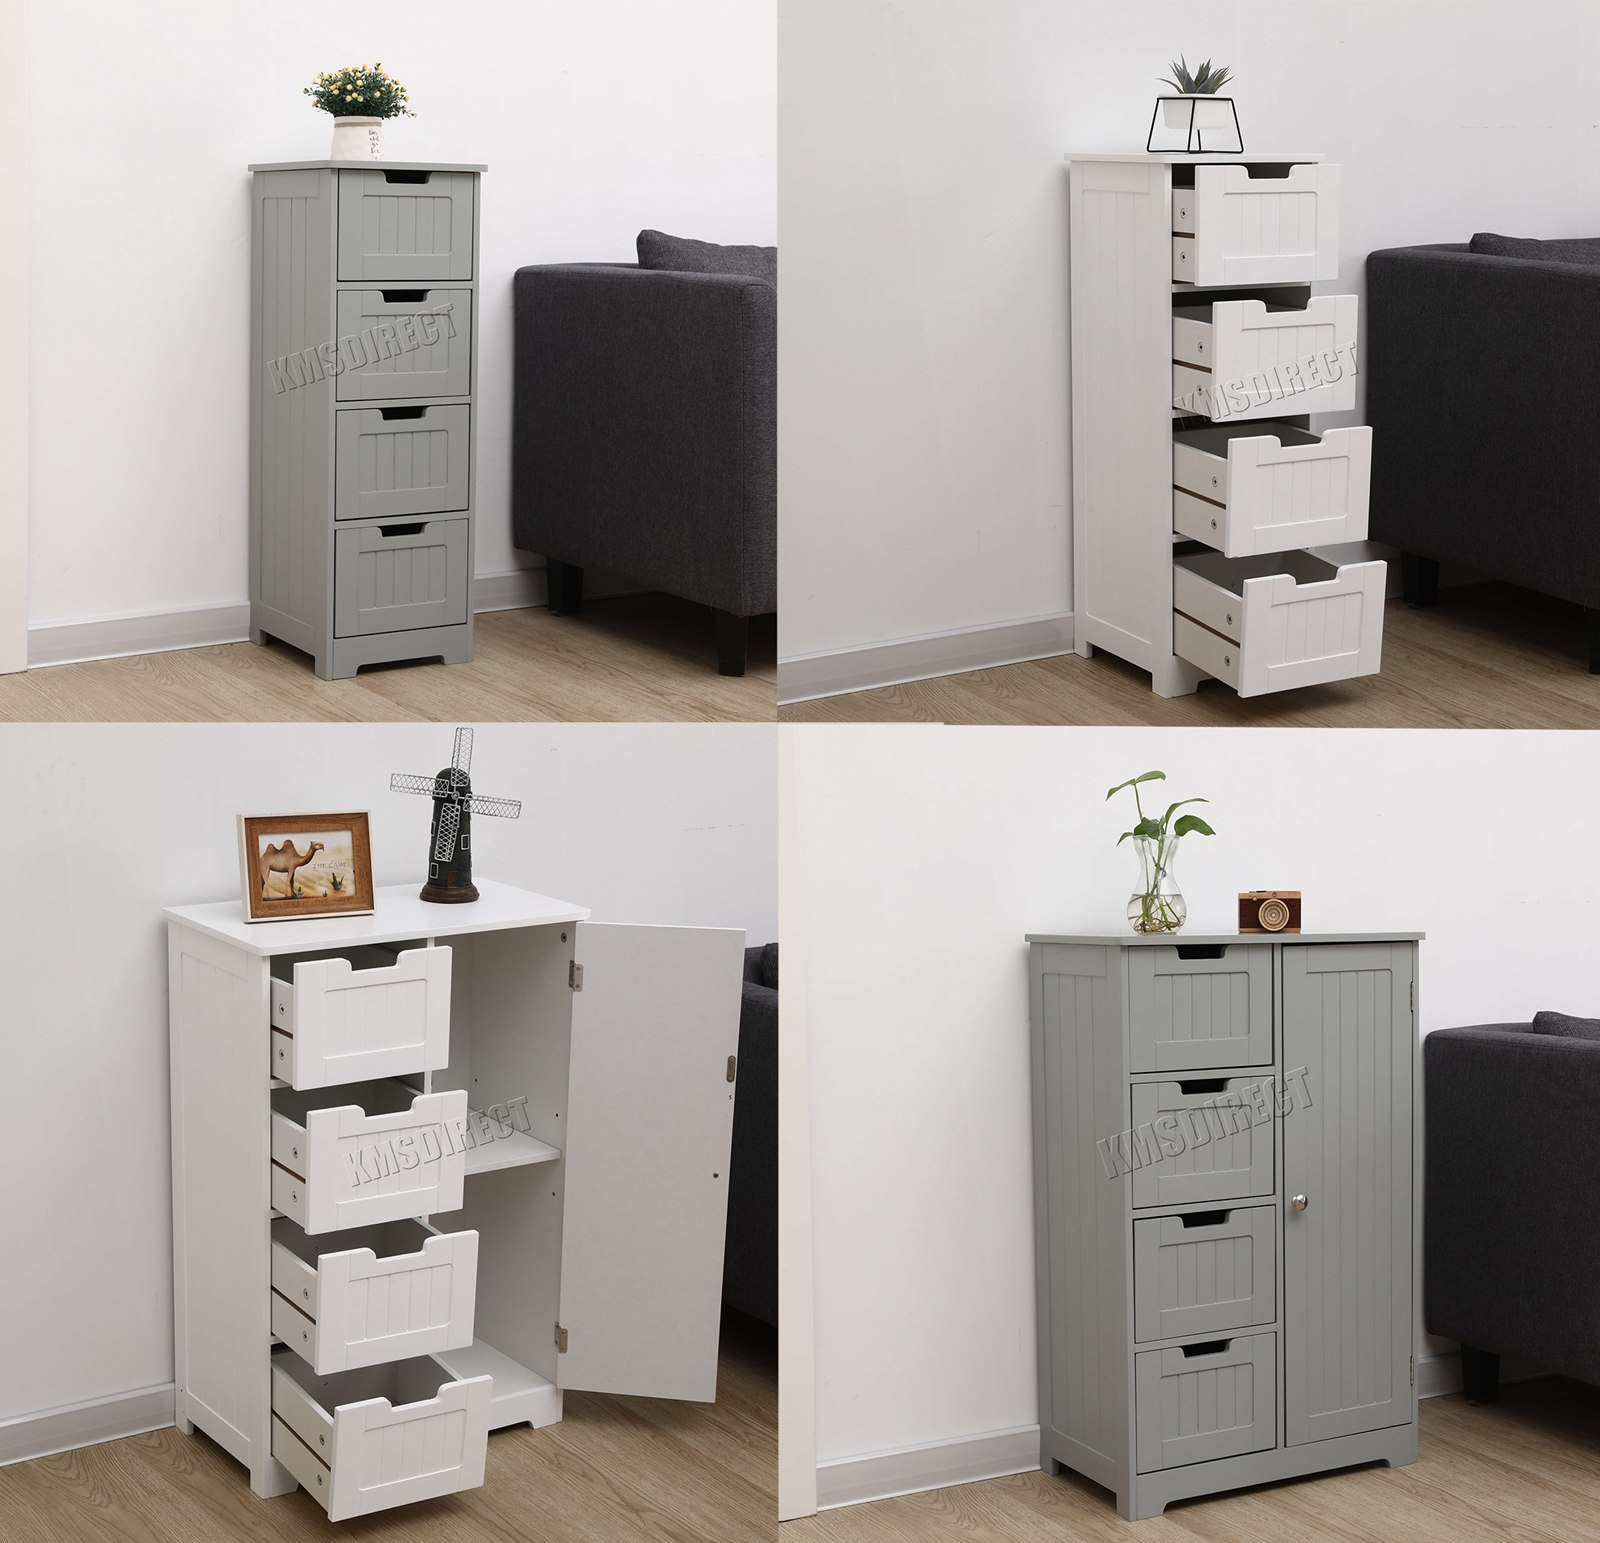 Details About Westwood Bathroom Storage Cabinet Wooden 4 Drawer Cupboard Free Standing Unit with regard to sizing 1600 X 1543